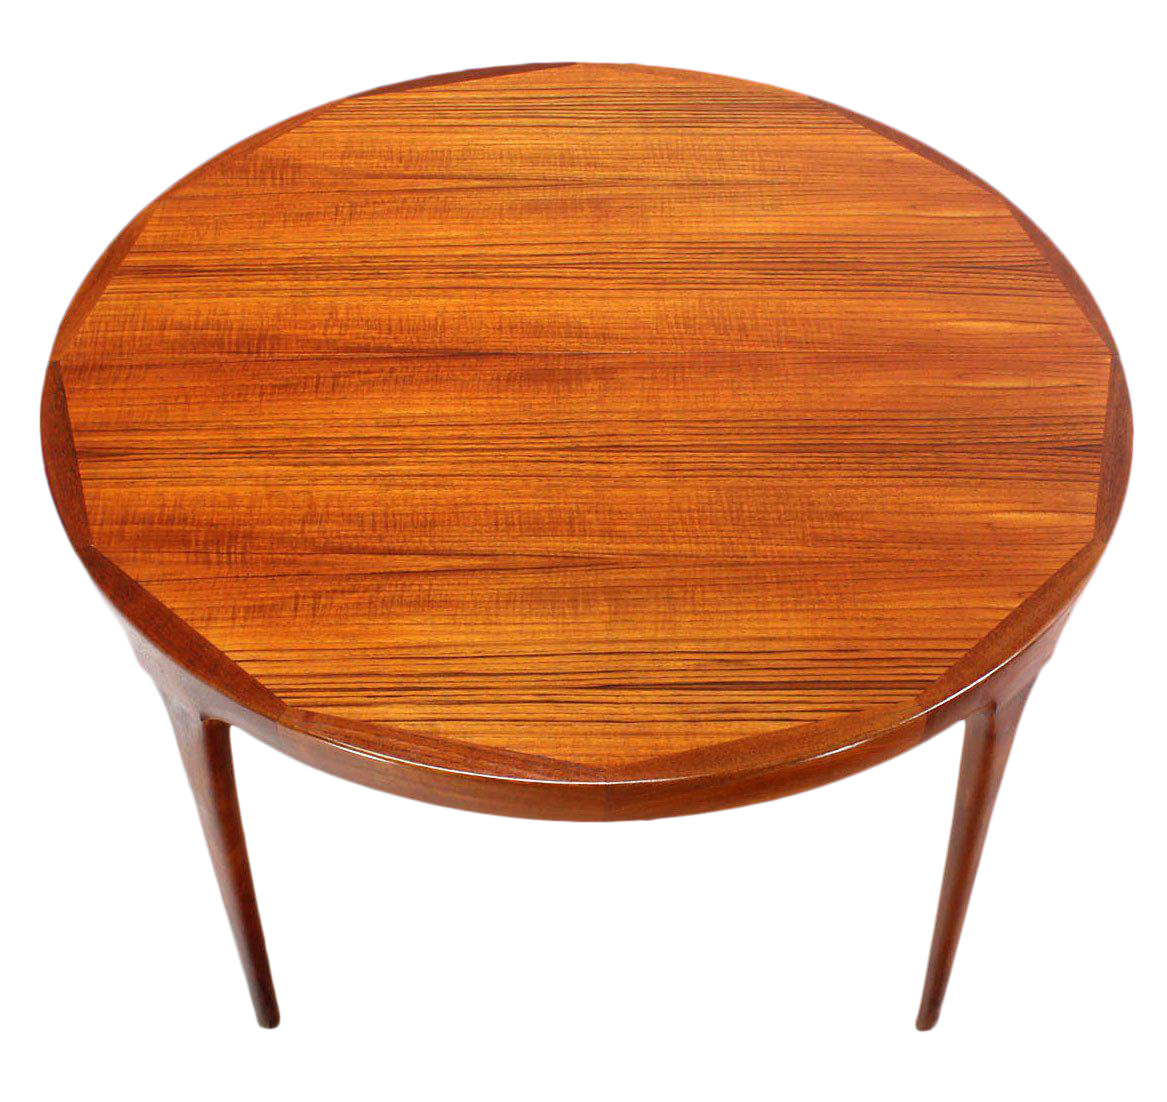 Danish Mid Century Modern Round Teak Dining Table With Two Leaves